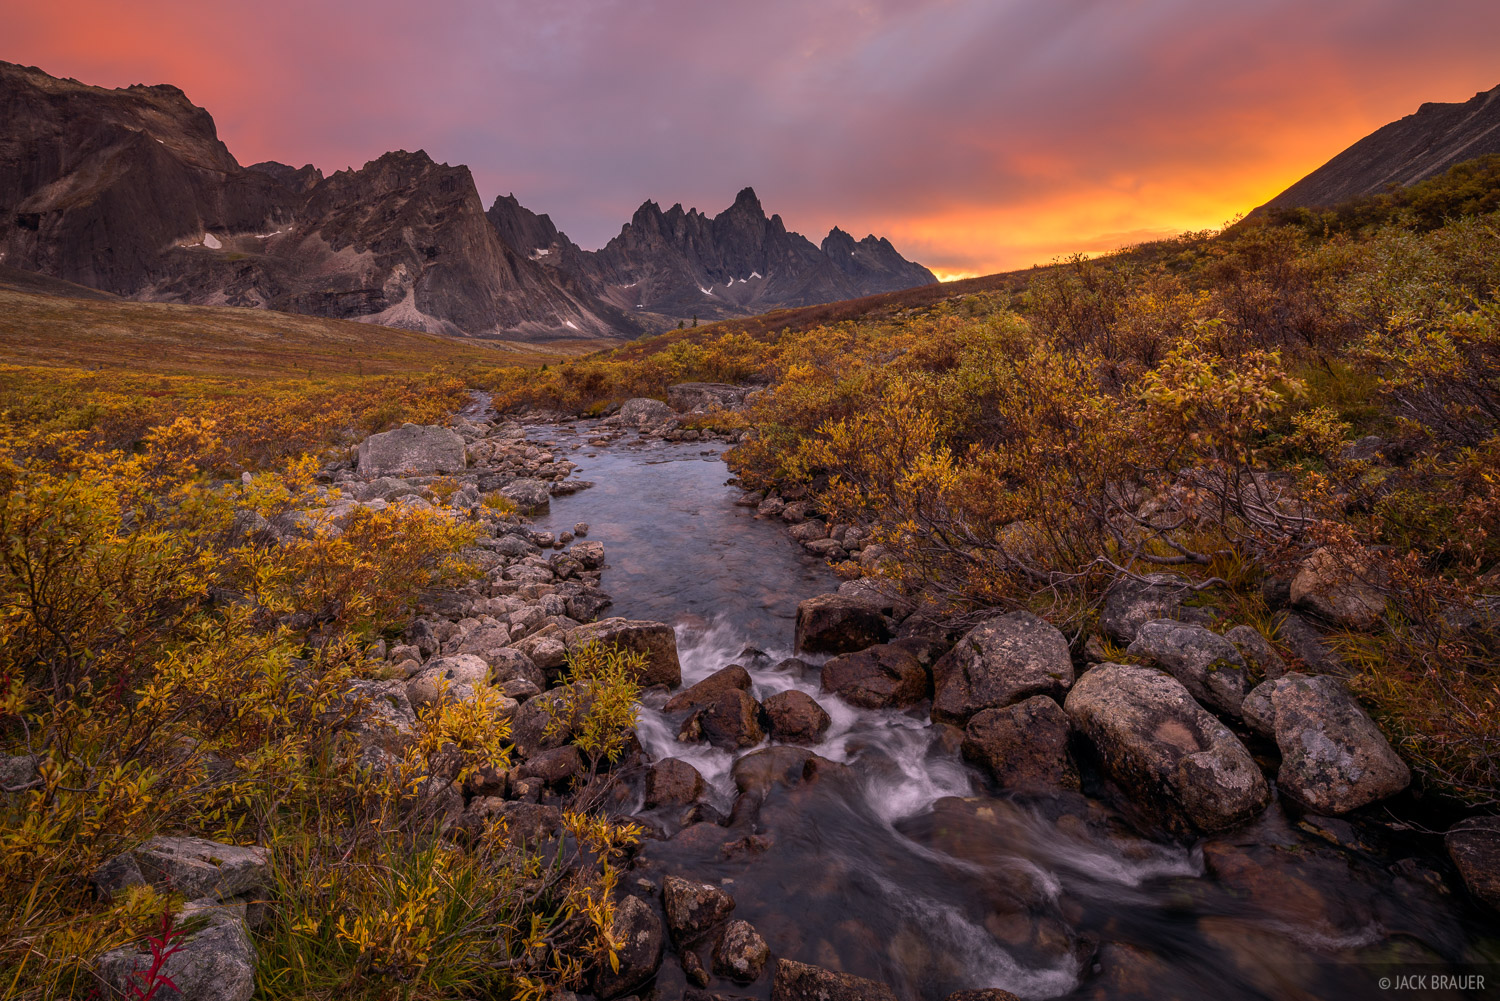 Sunset above the Tombstone River and Tombstone Peak. Hats off to James Studarus who encouraged me to go check out this creek!